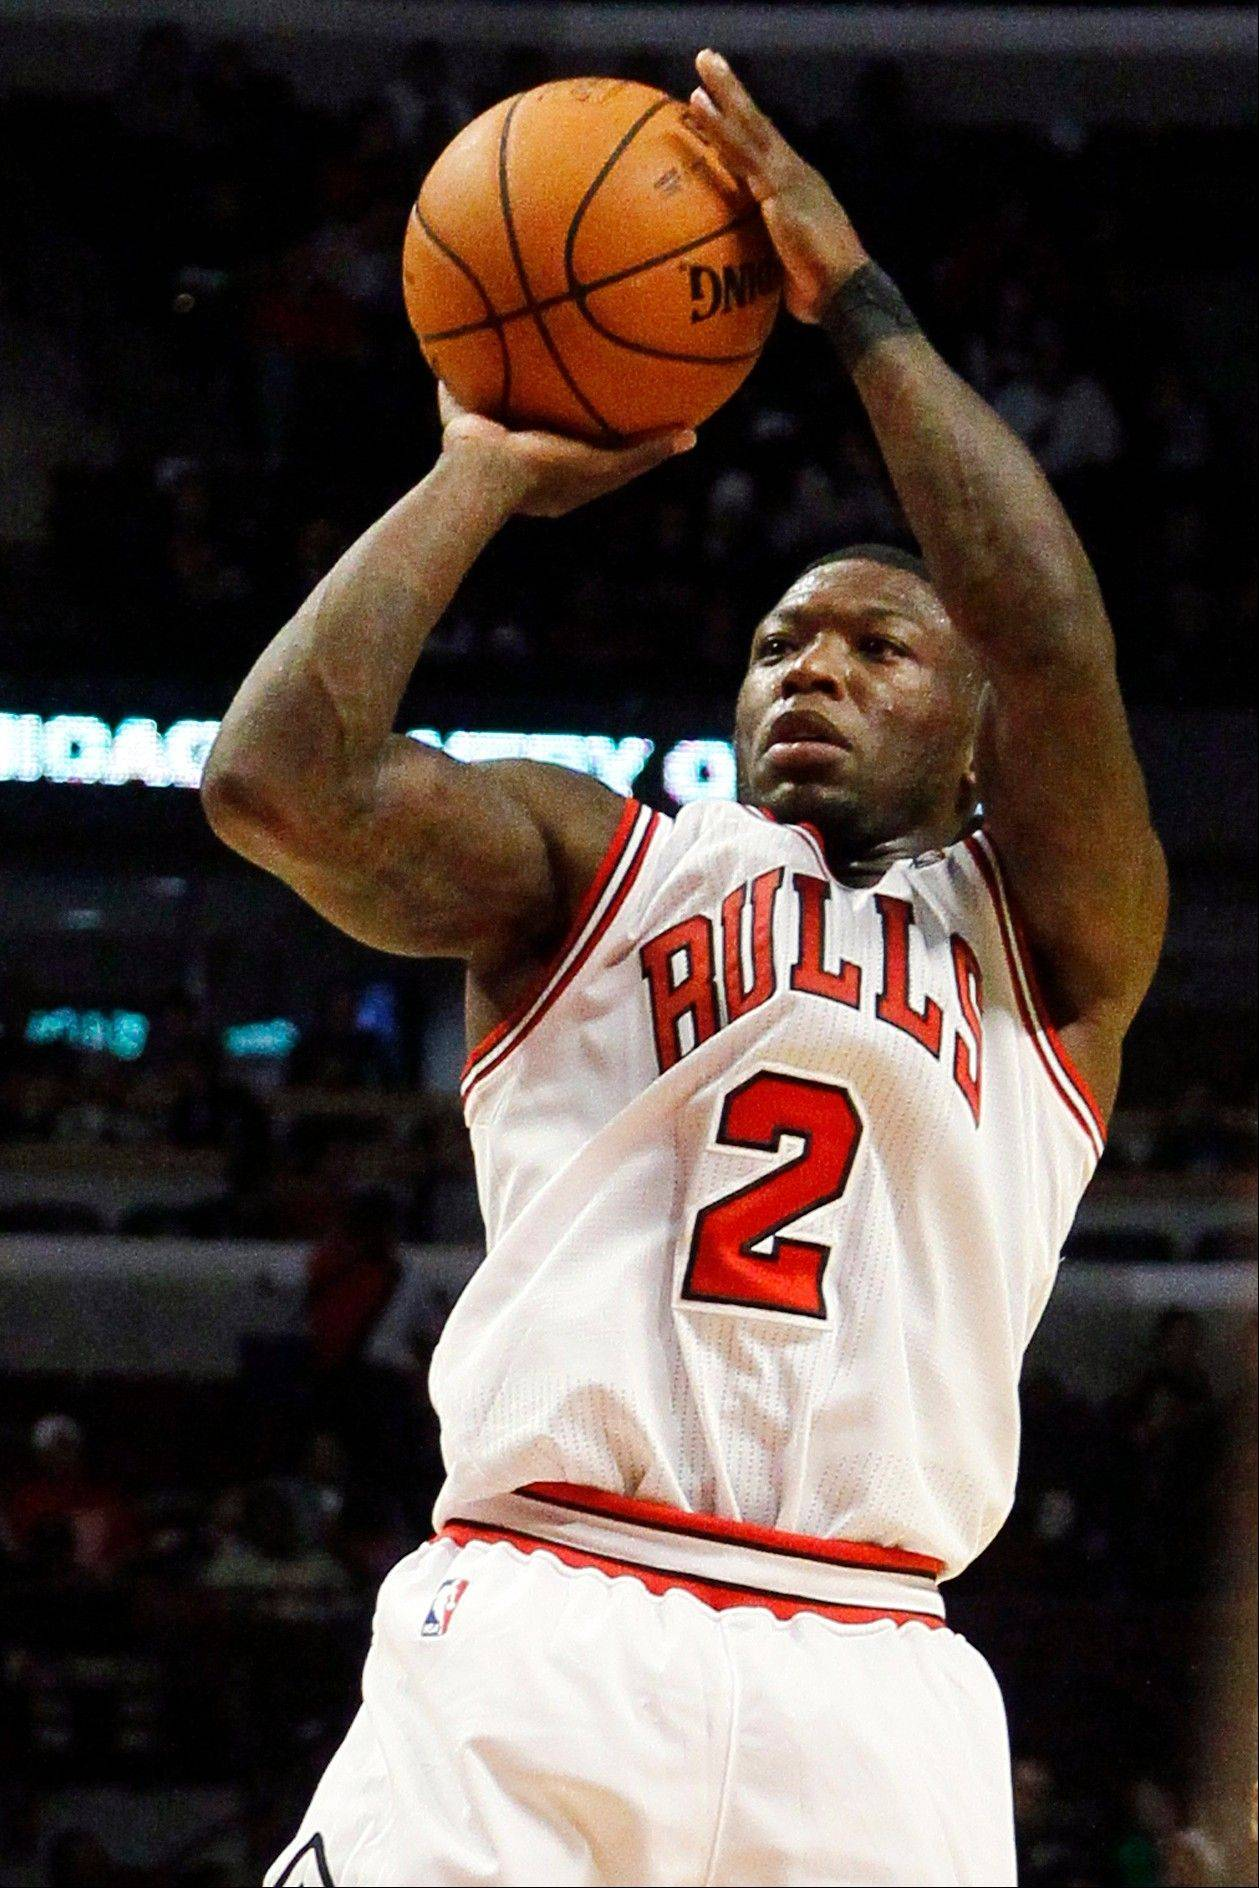 Bulls guard Nate Robinson finished with 24 points and 13 rebounds in Tuesday night's preseason victory over the Milwaukee Bucks.